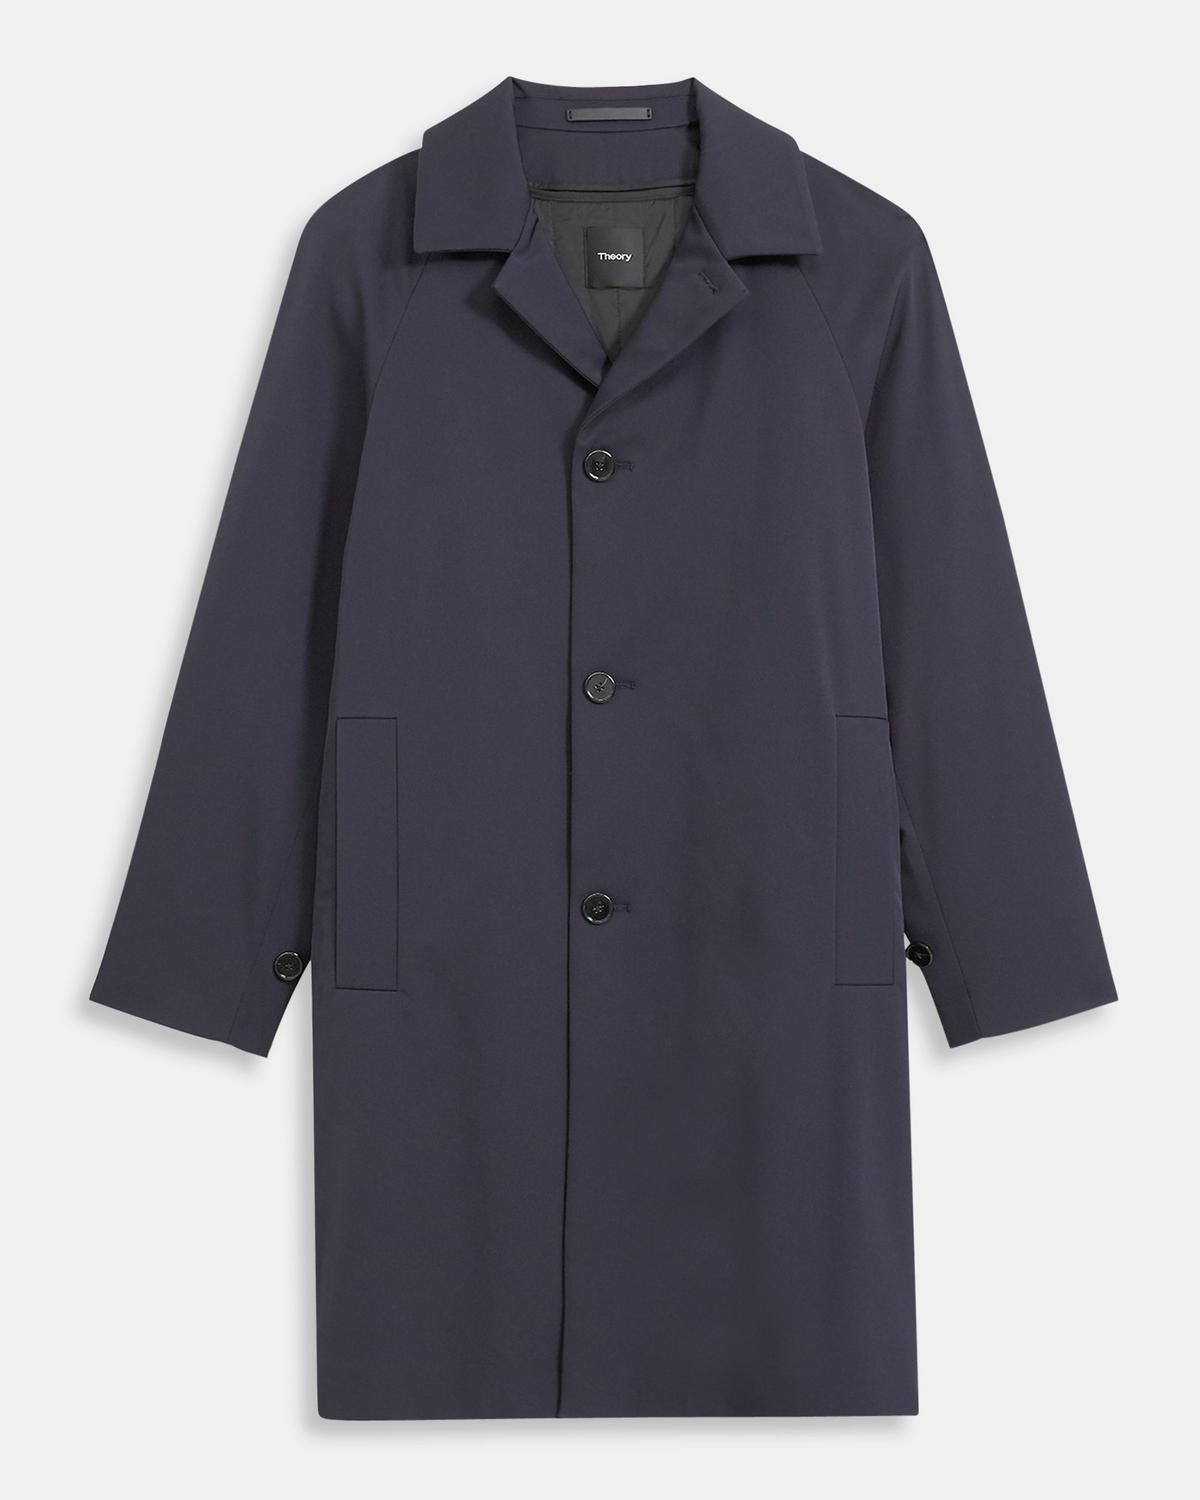 Saville Coat in Technical Twill